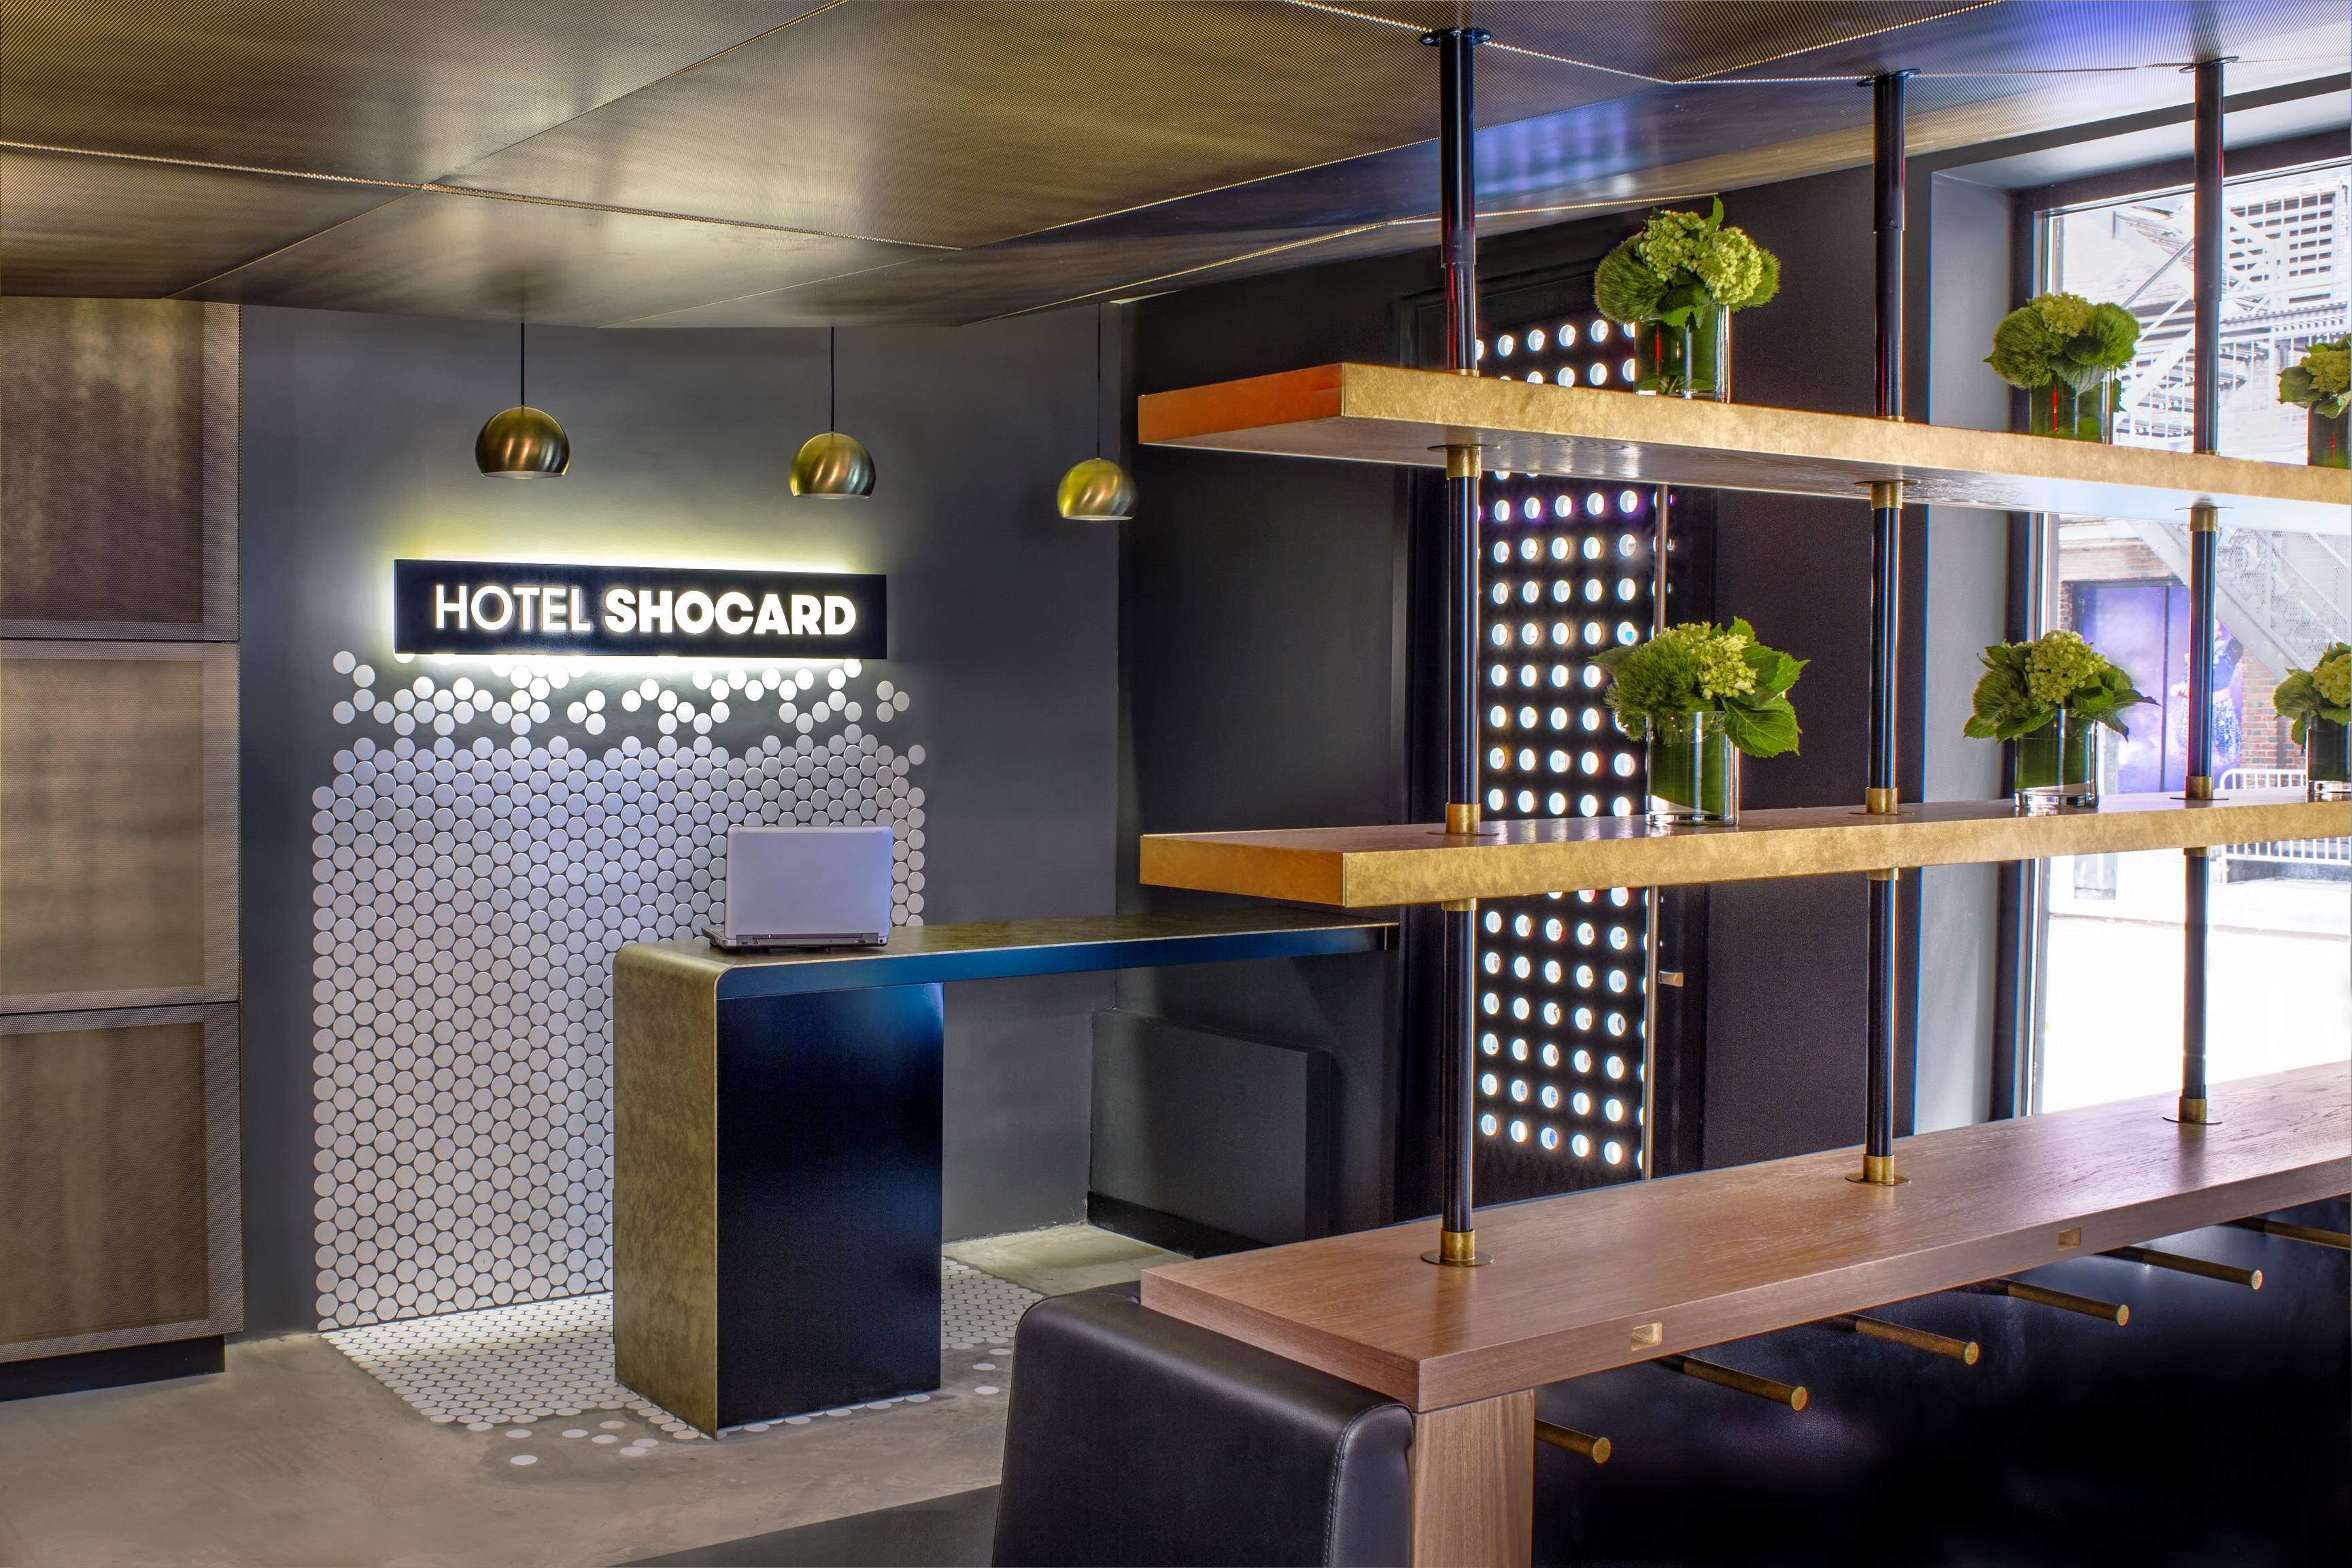 Hotel Hotel Shocard at Times Square